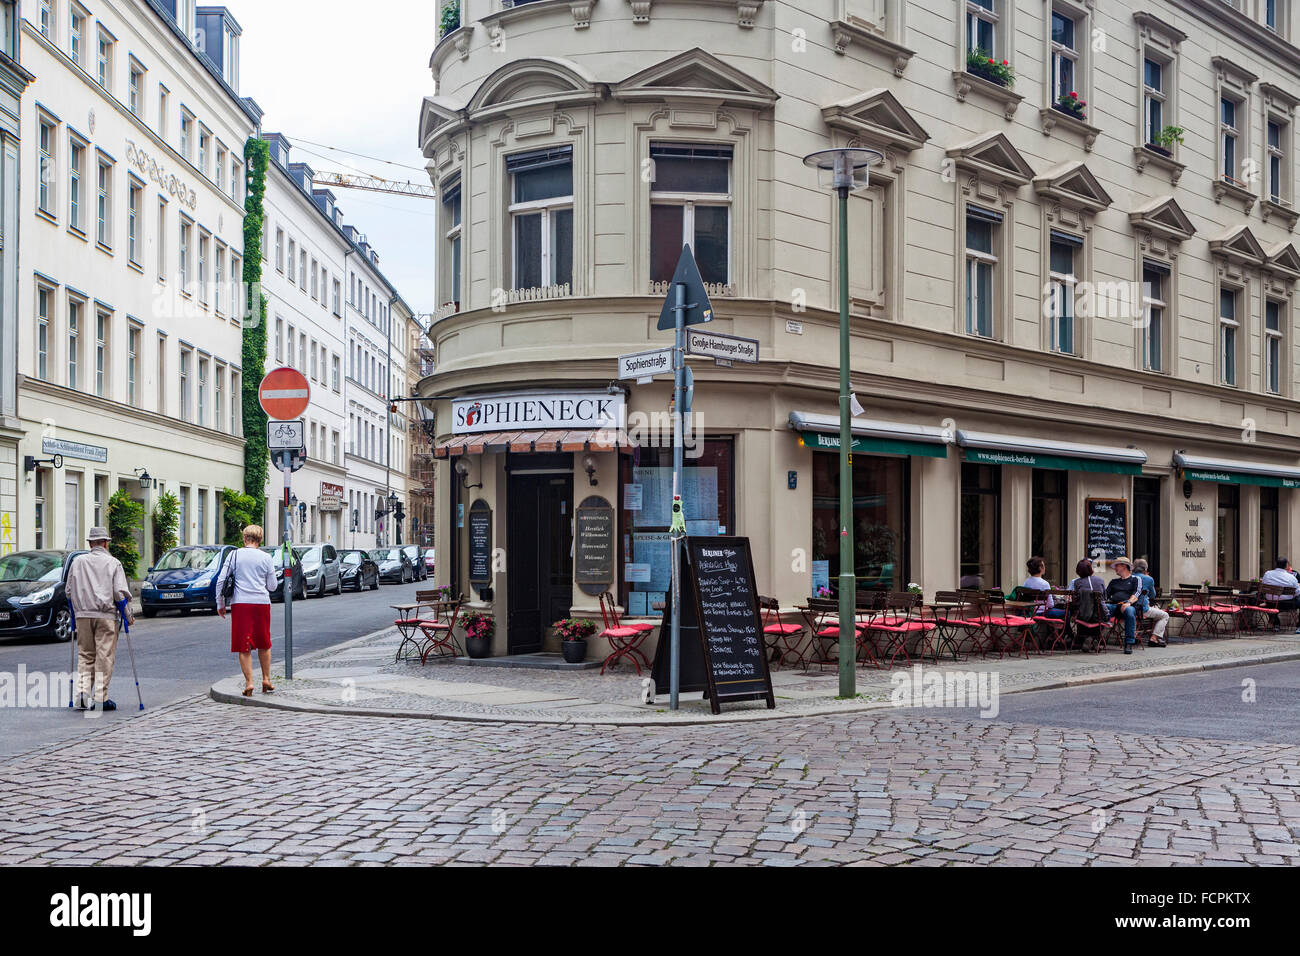 Sophieneck Bar And Restaurant Serving German Food Mitte Berlin Stock Photo Alamy